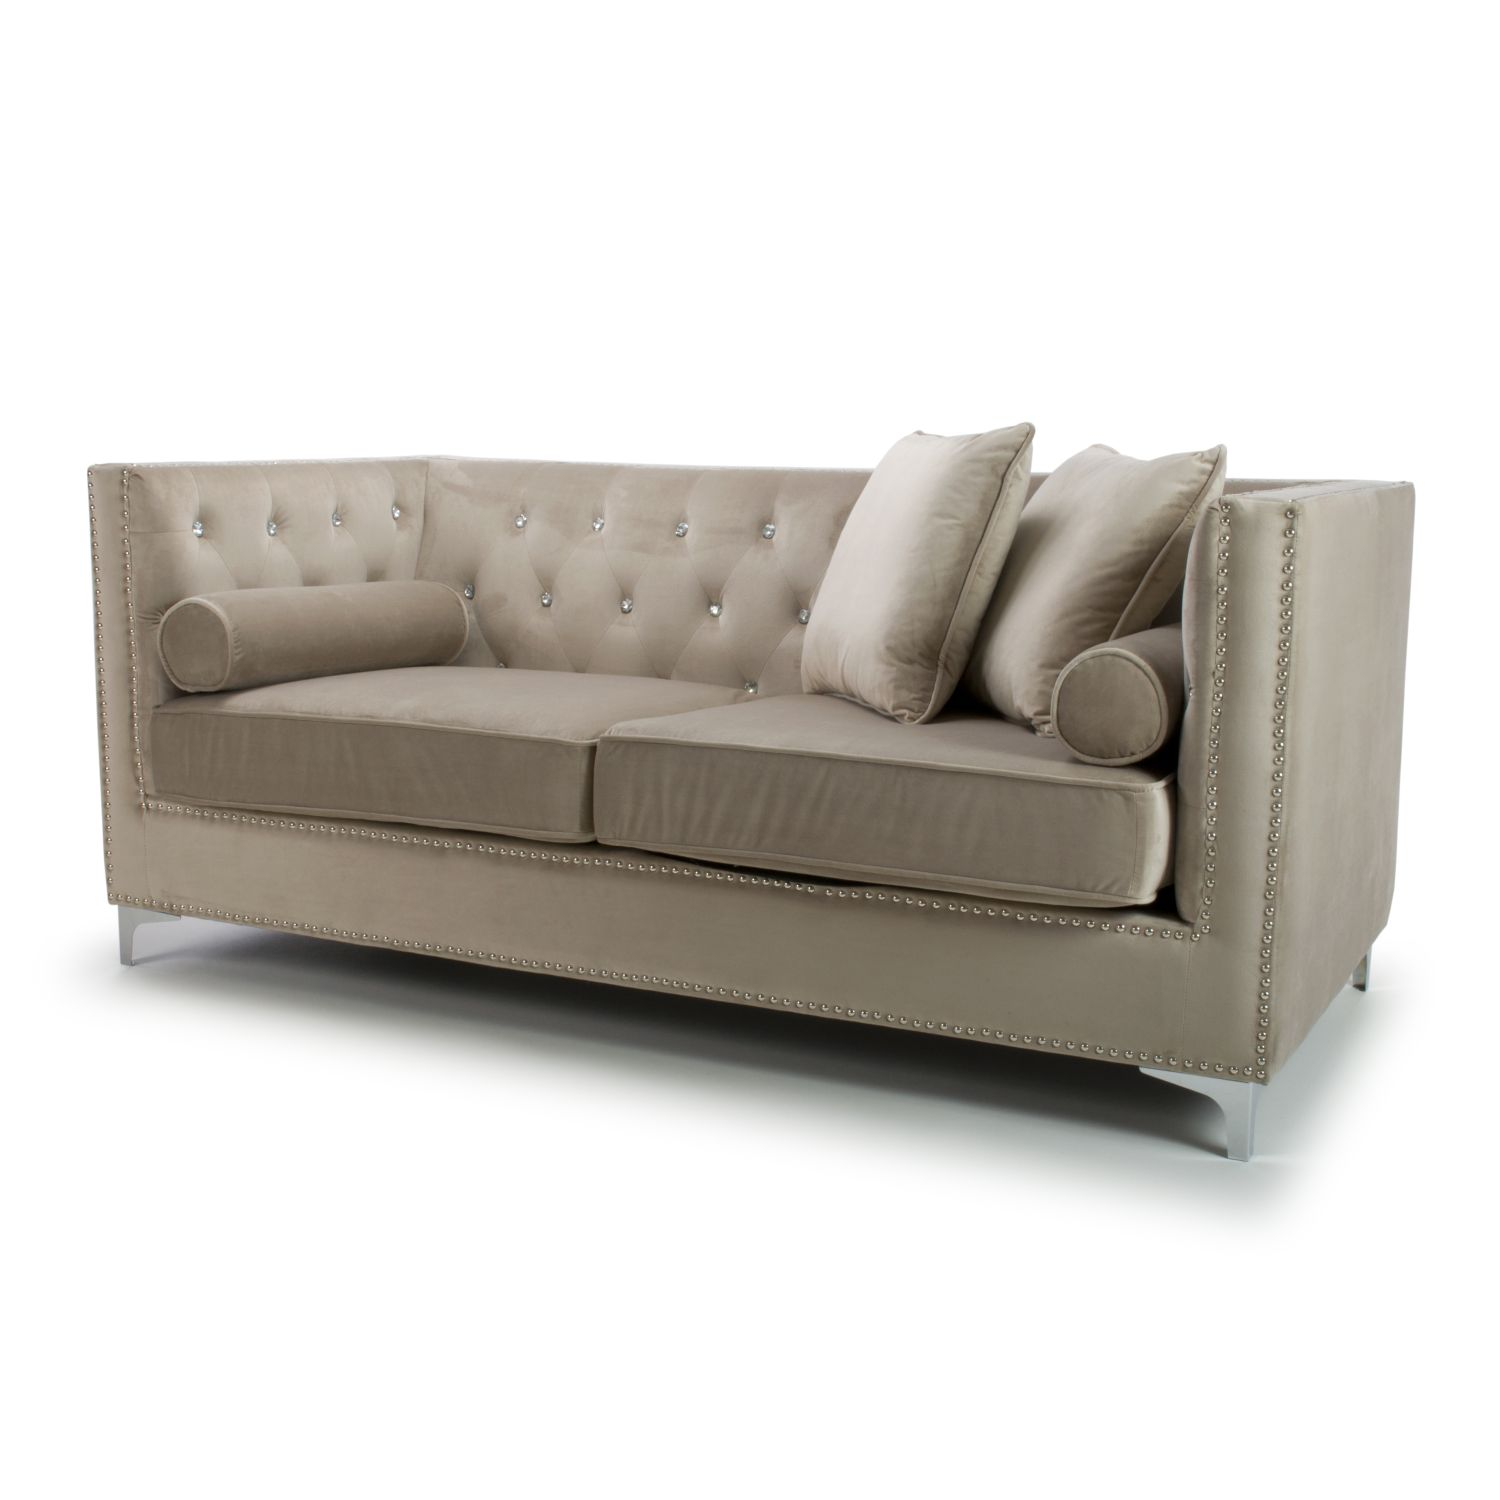 3 seater mink6